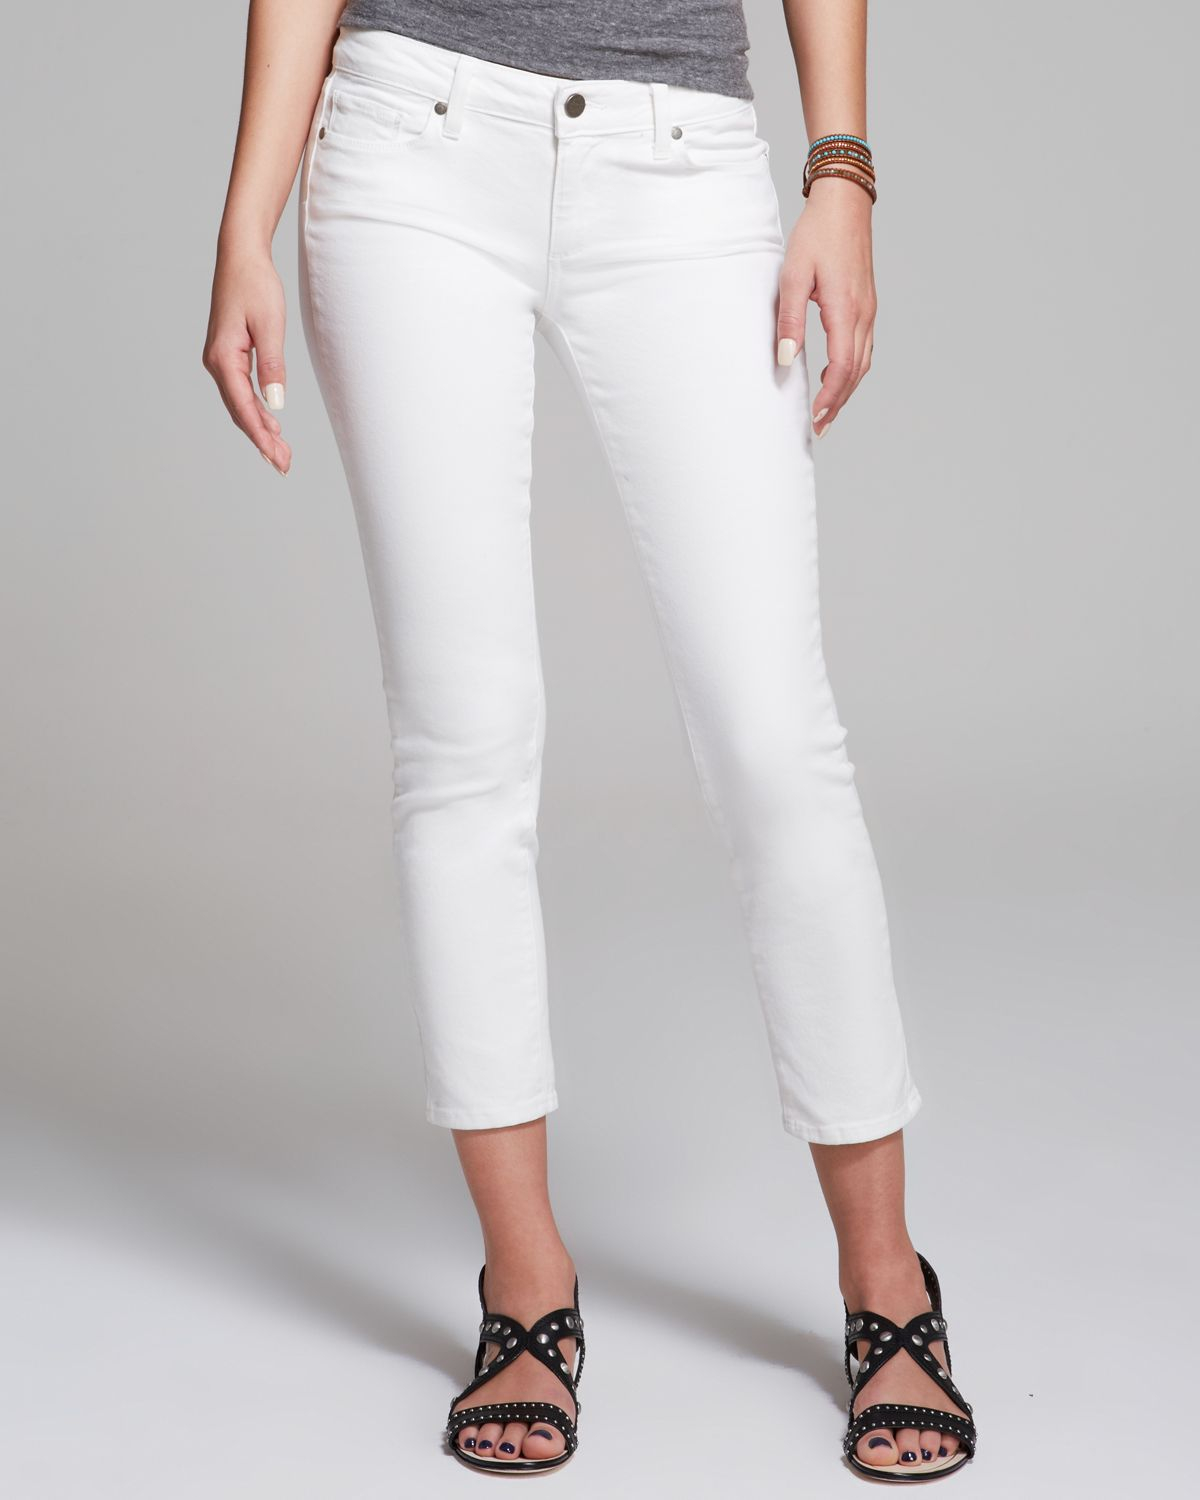 8821c106430 Gallery. Previously sold at: Bloomingdale's · Women's White Jeans